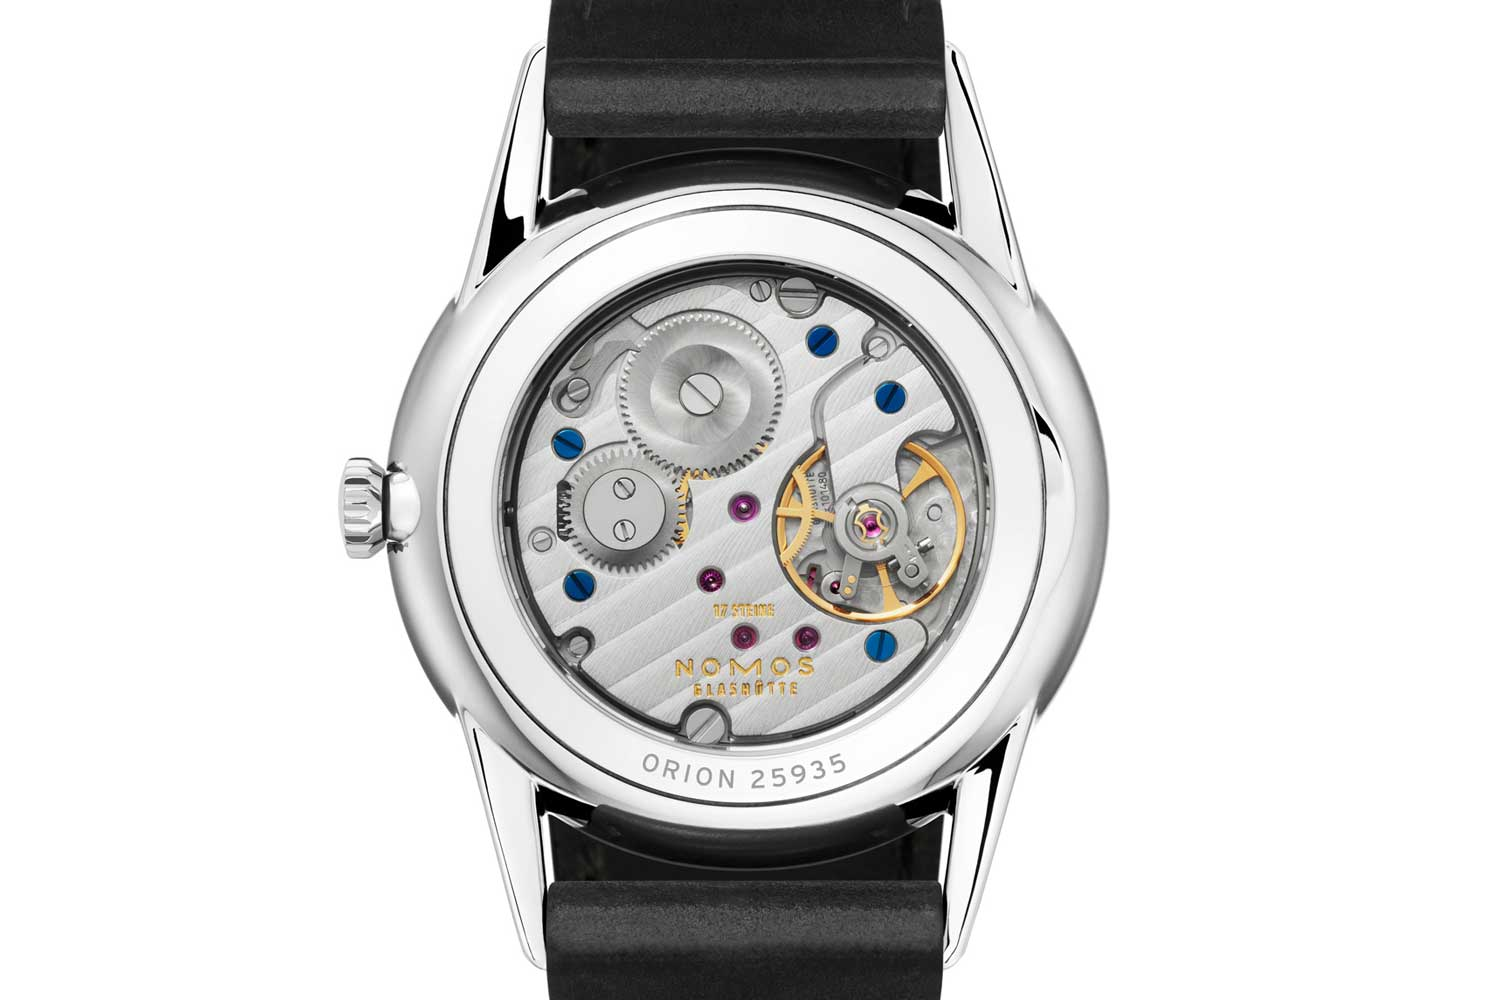 Orion with sapphire crystal caseback